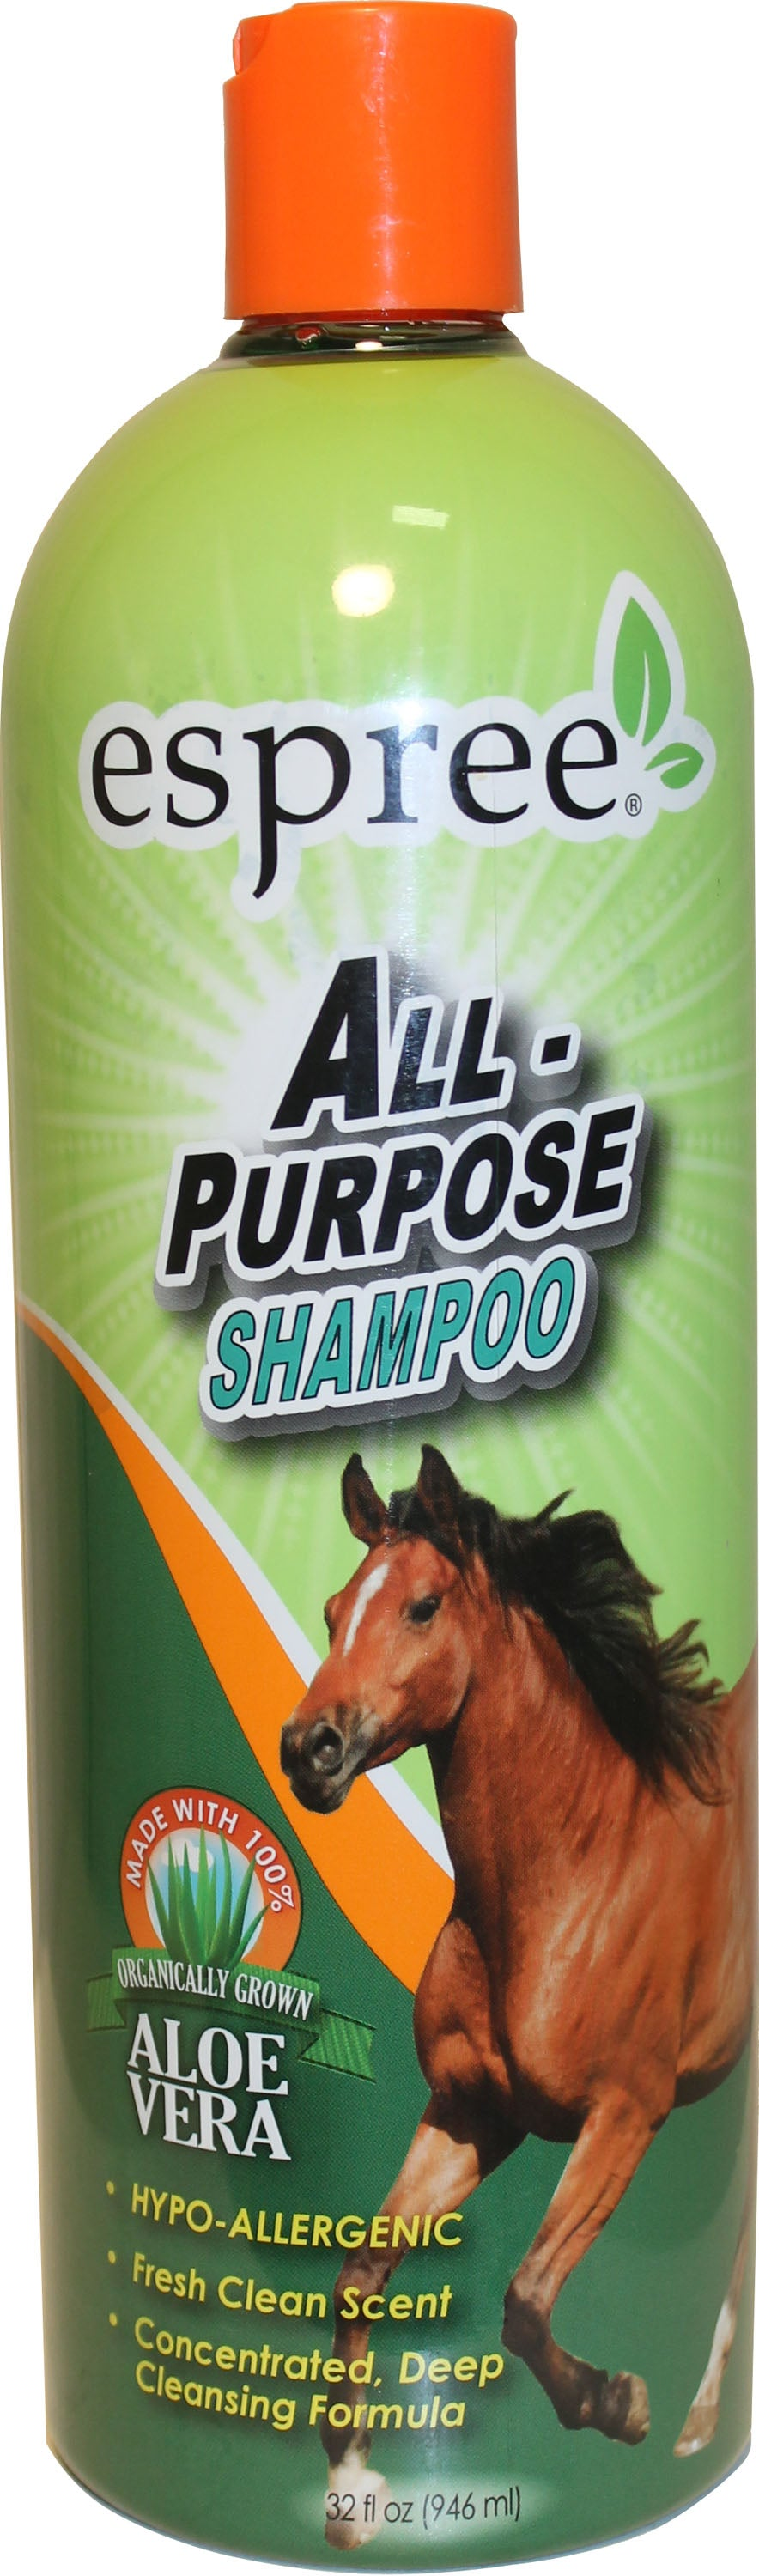 Espree All Purpose Shampoo